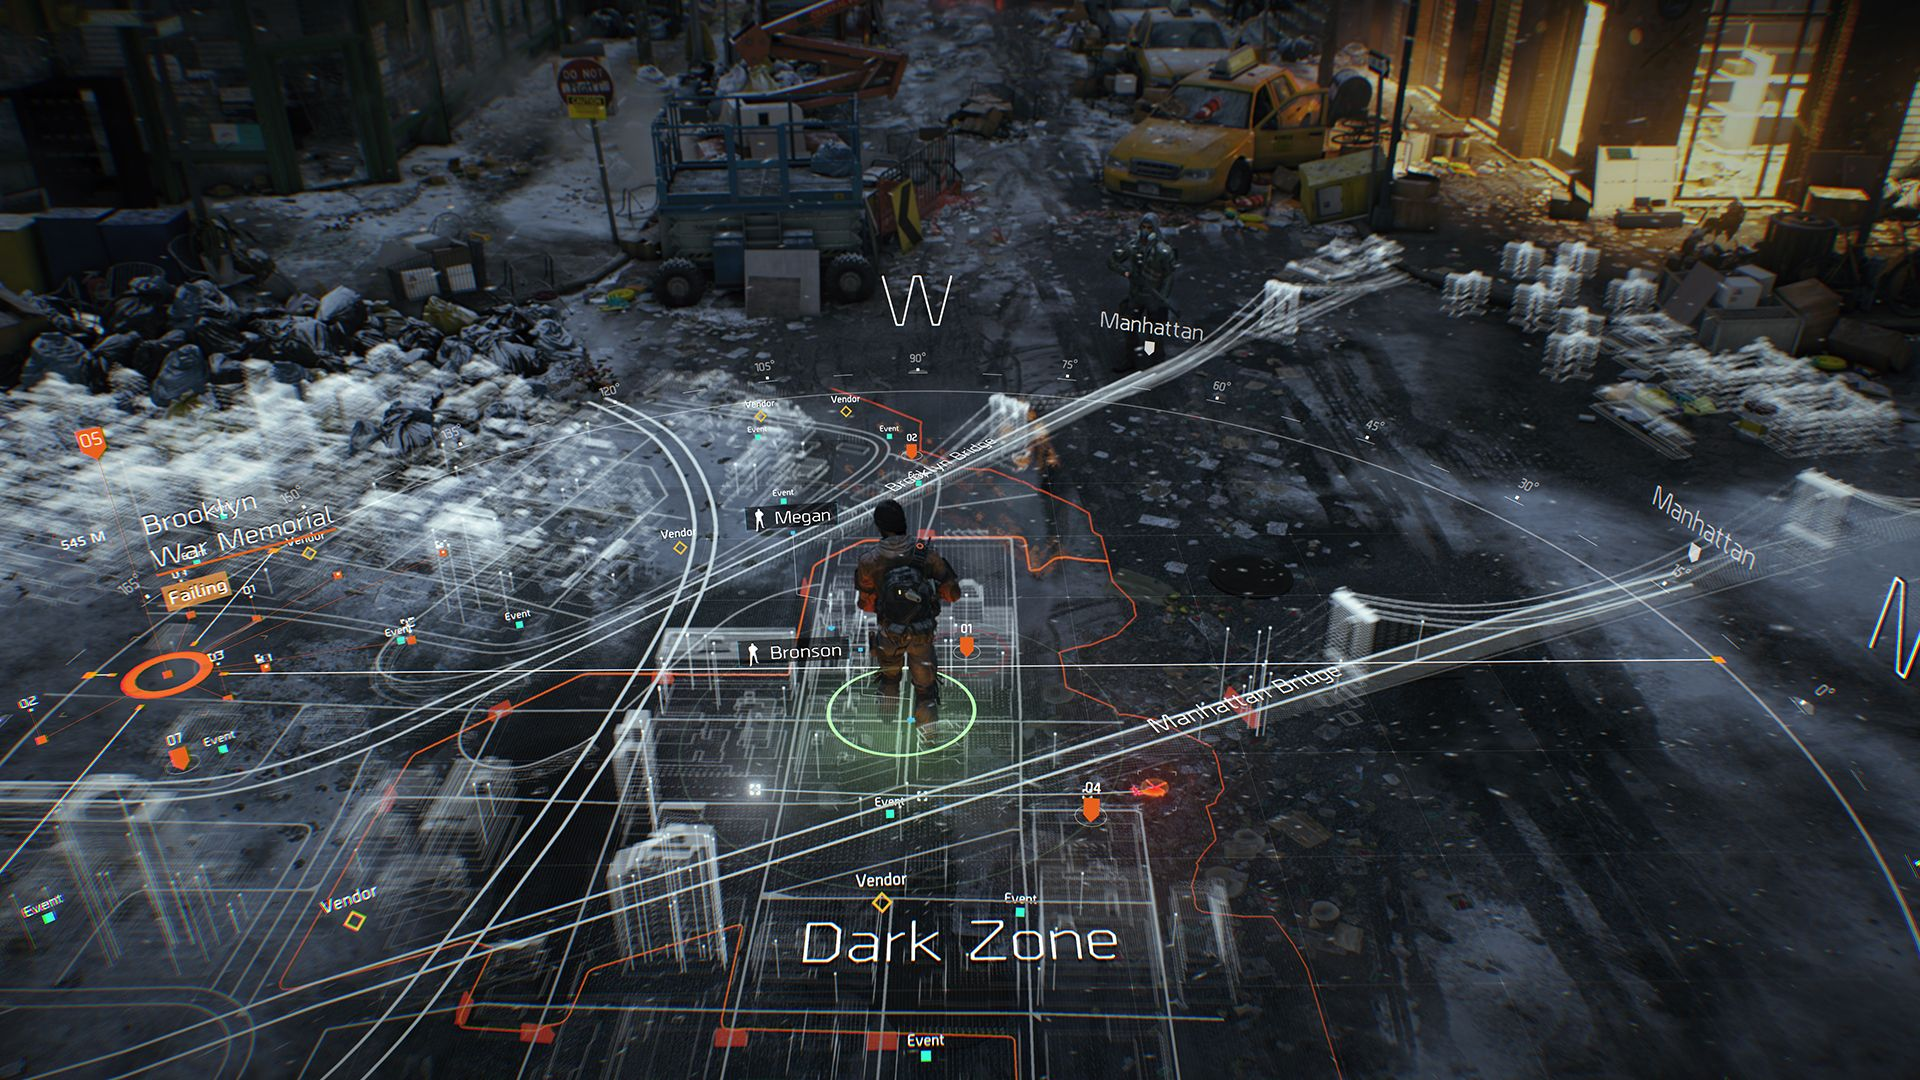 The Division World Map Of New York And Your Location In That World - Nyc map wallpaper